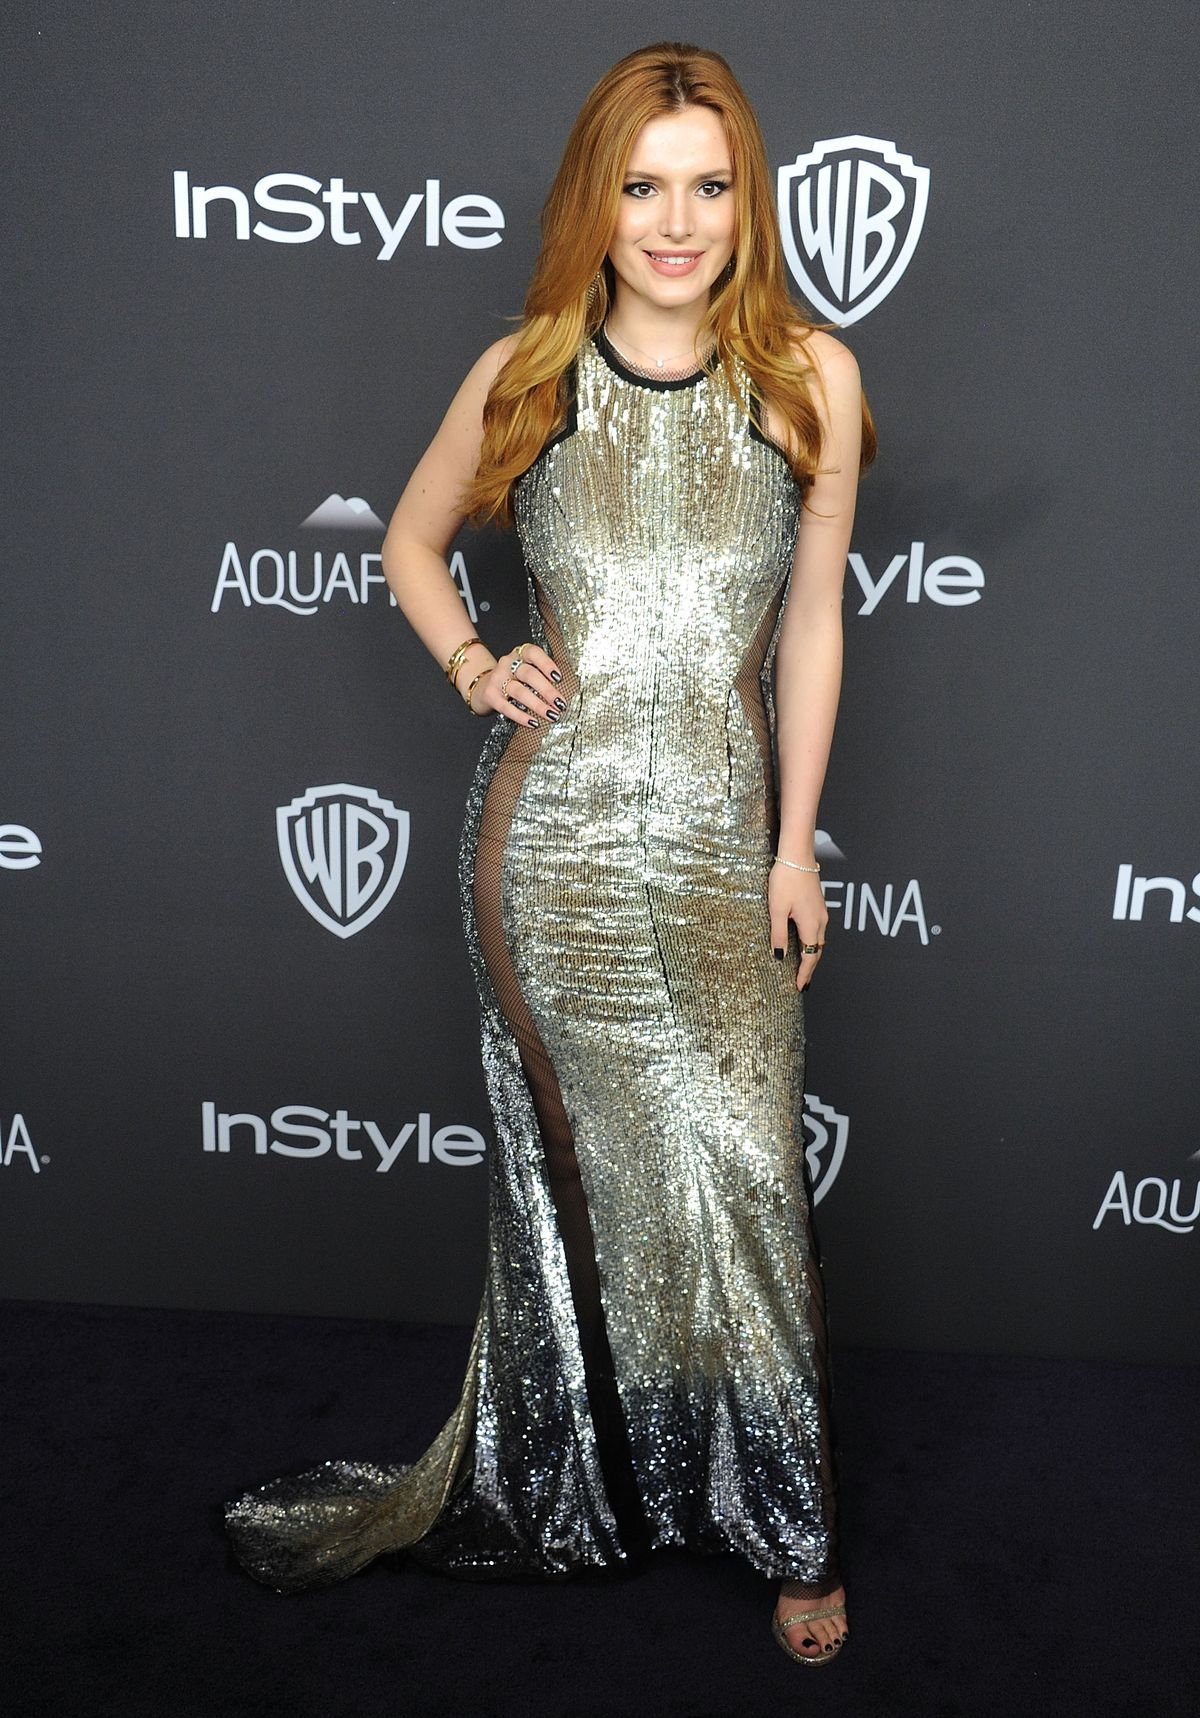 BEVERLY HILLS, CA - JANUARY 10: Actress Bella Thorne arrives at the 2016 InStyle And Warner Bros. 73rd Annual Golden Globe Awards Post-Party at The Beverly Hilton Hotel on January 10, 2016 in Beverly Hills, California. (Photo by Gregg DeGuire/WireImage)